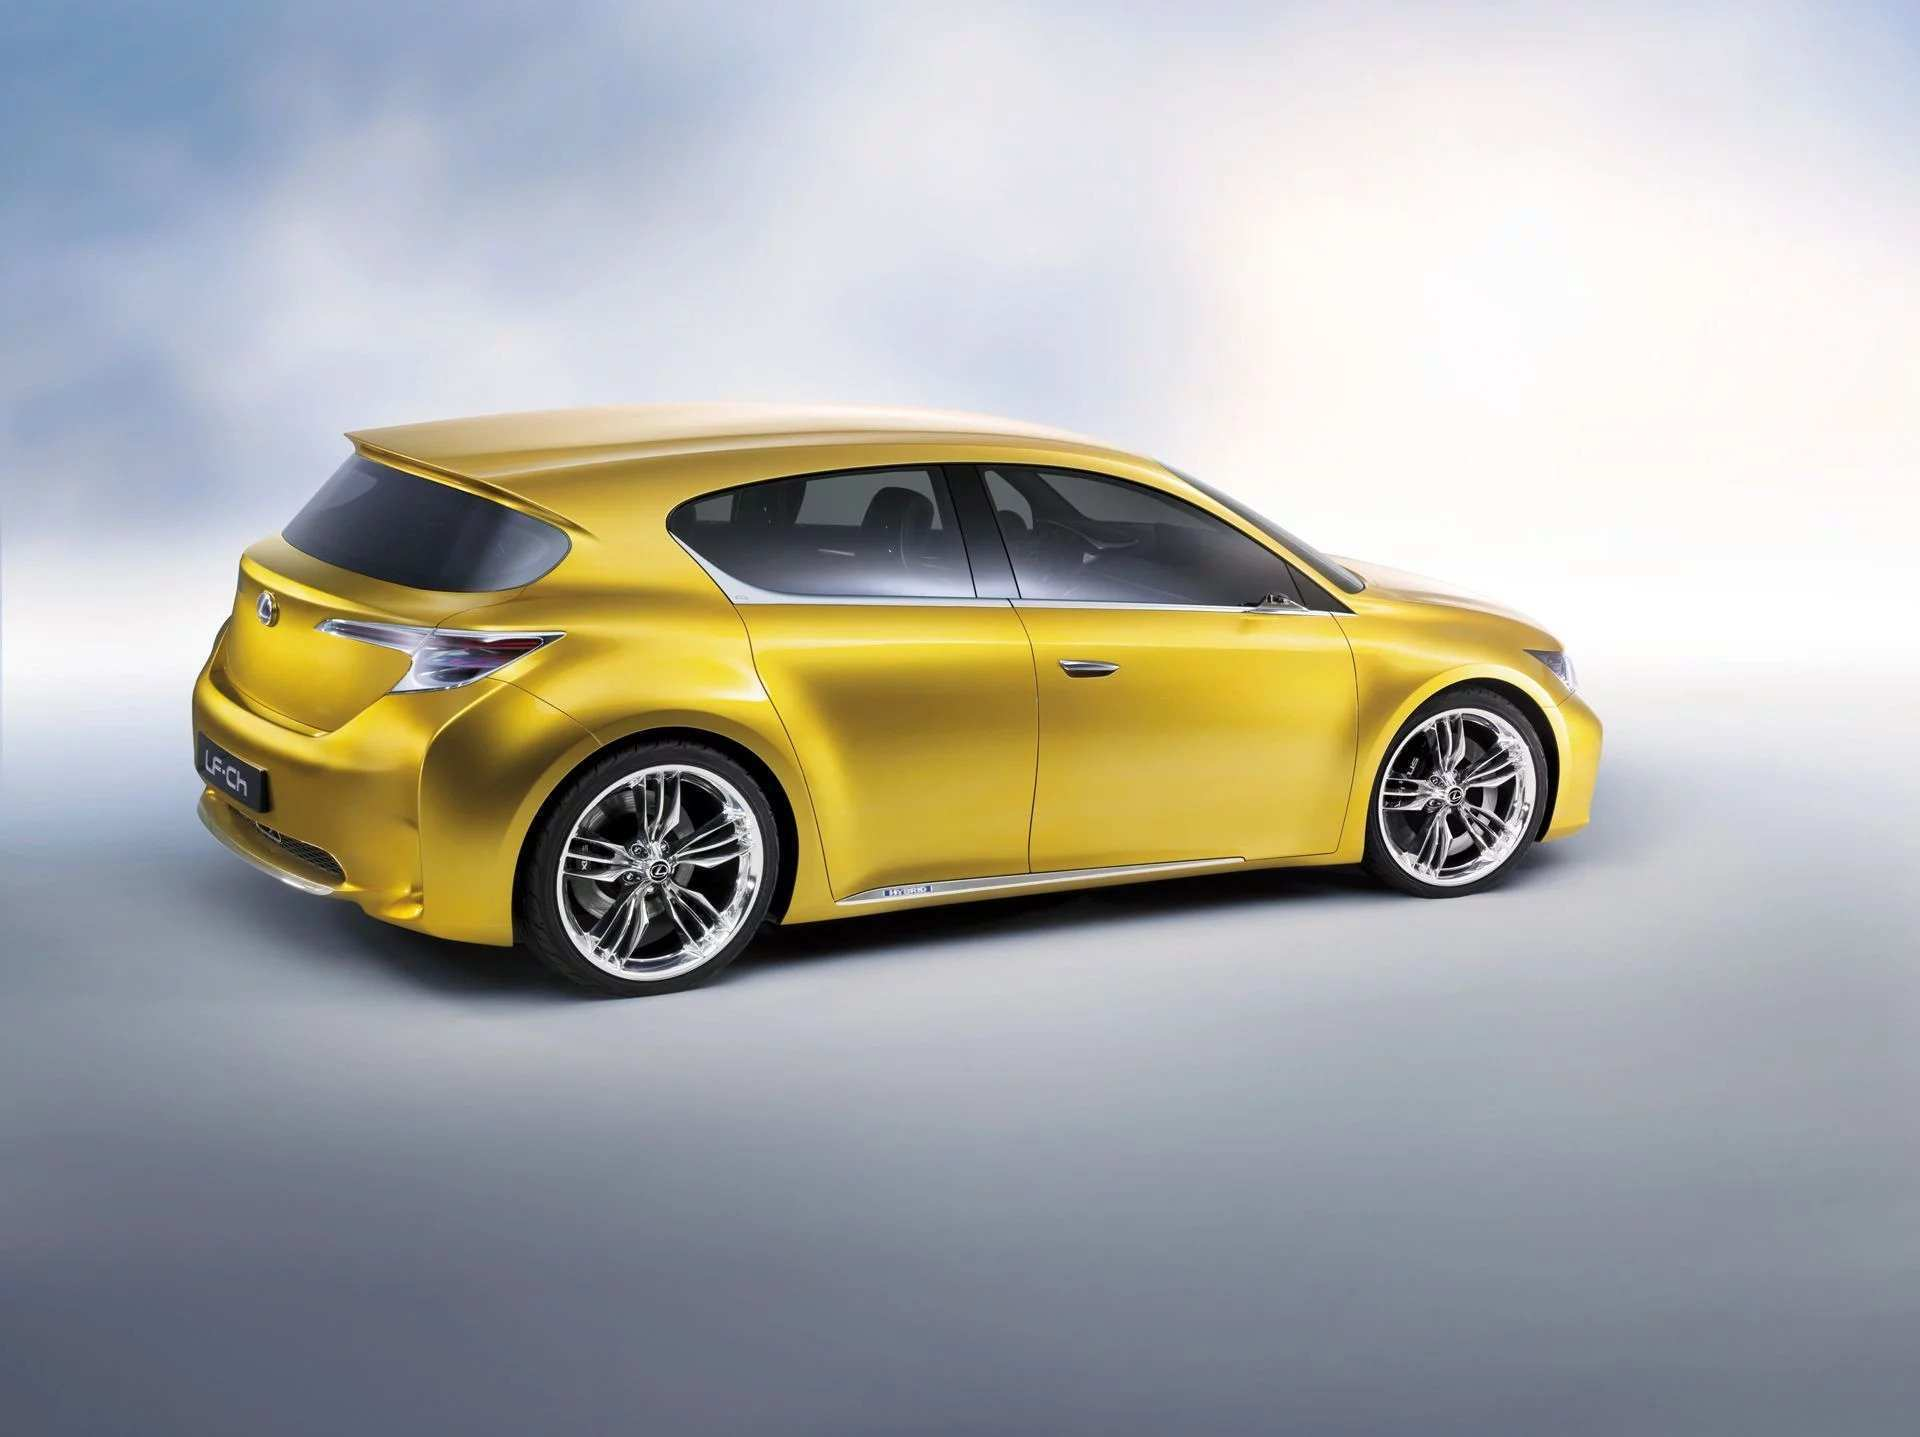 82 Concept of Lexus Hatchback 2020 New Concept with Lexus Hatchback 2020